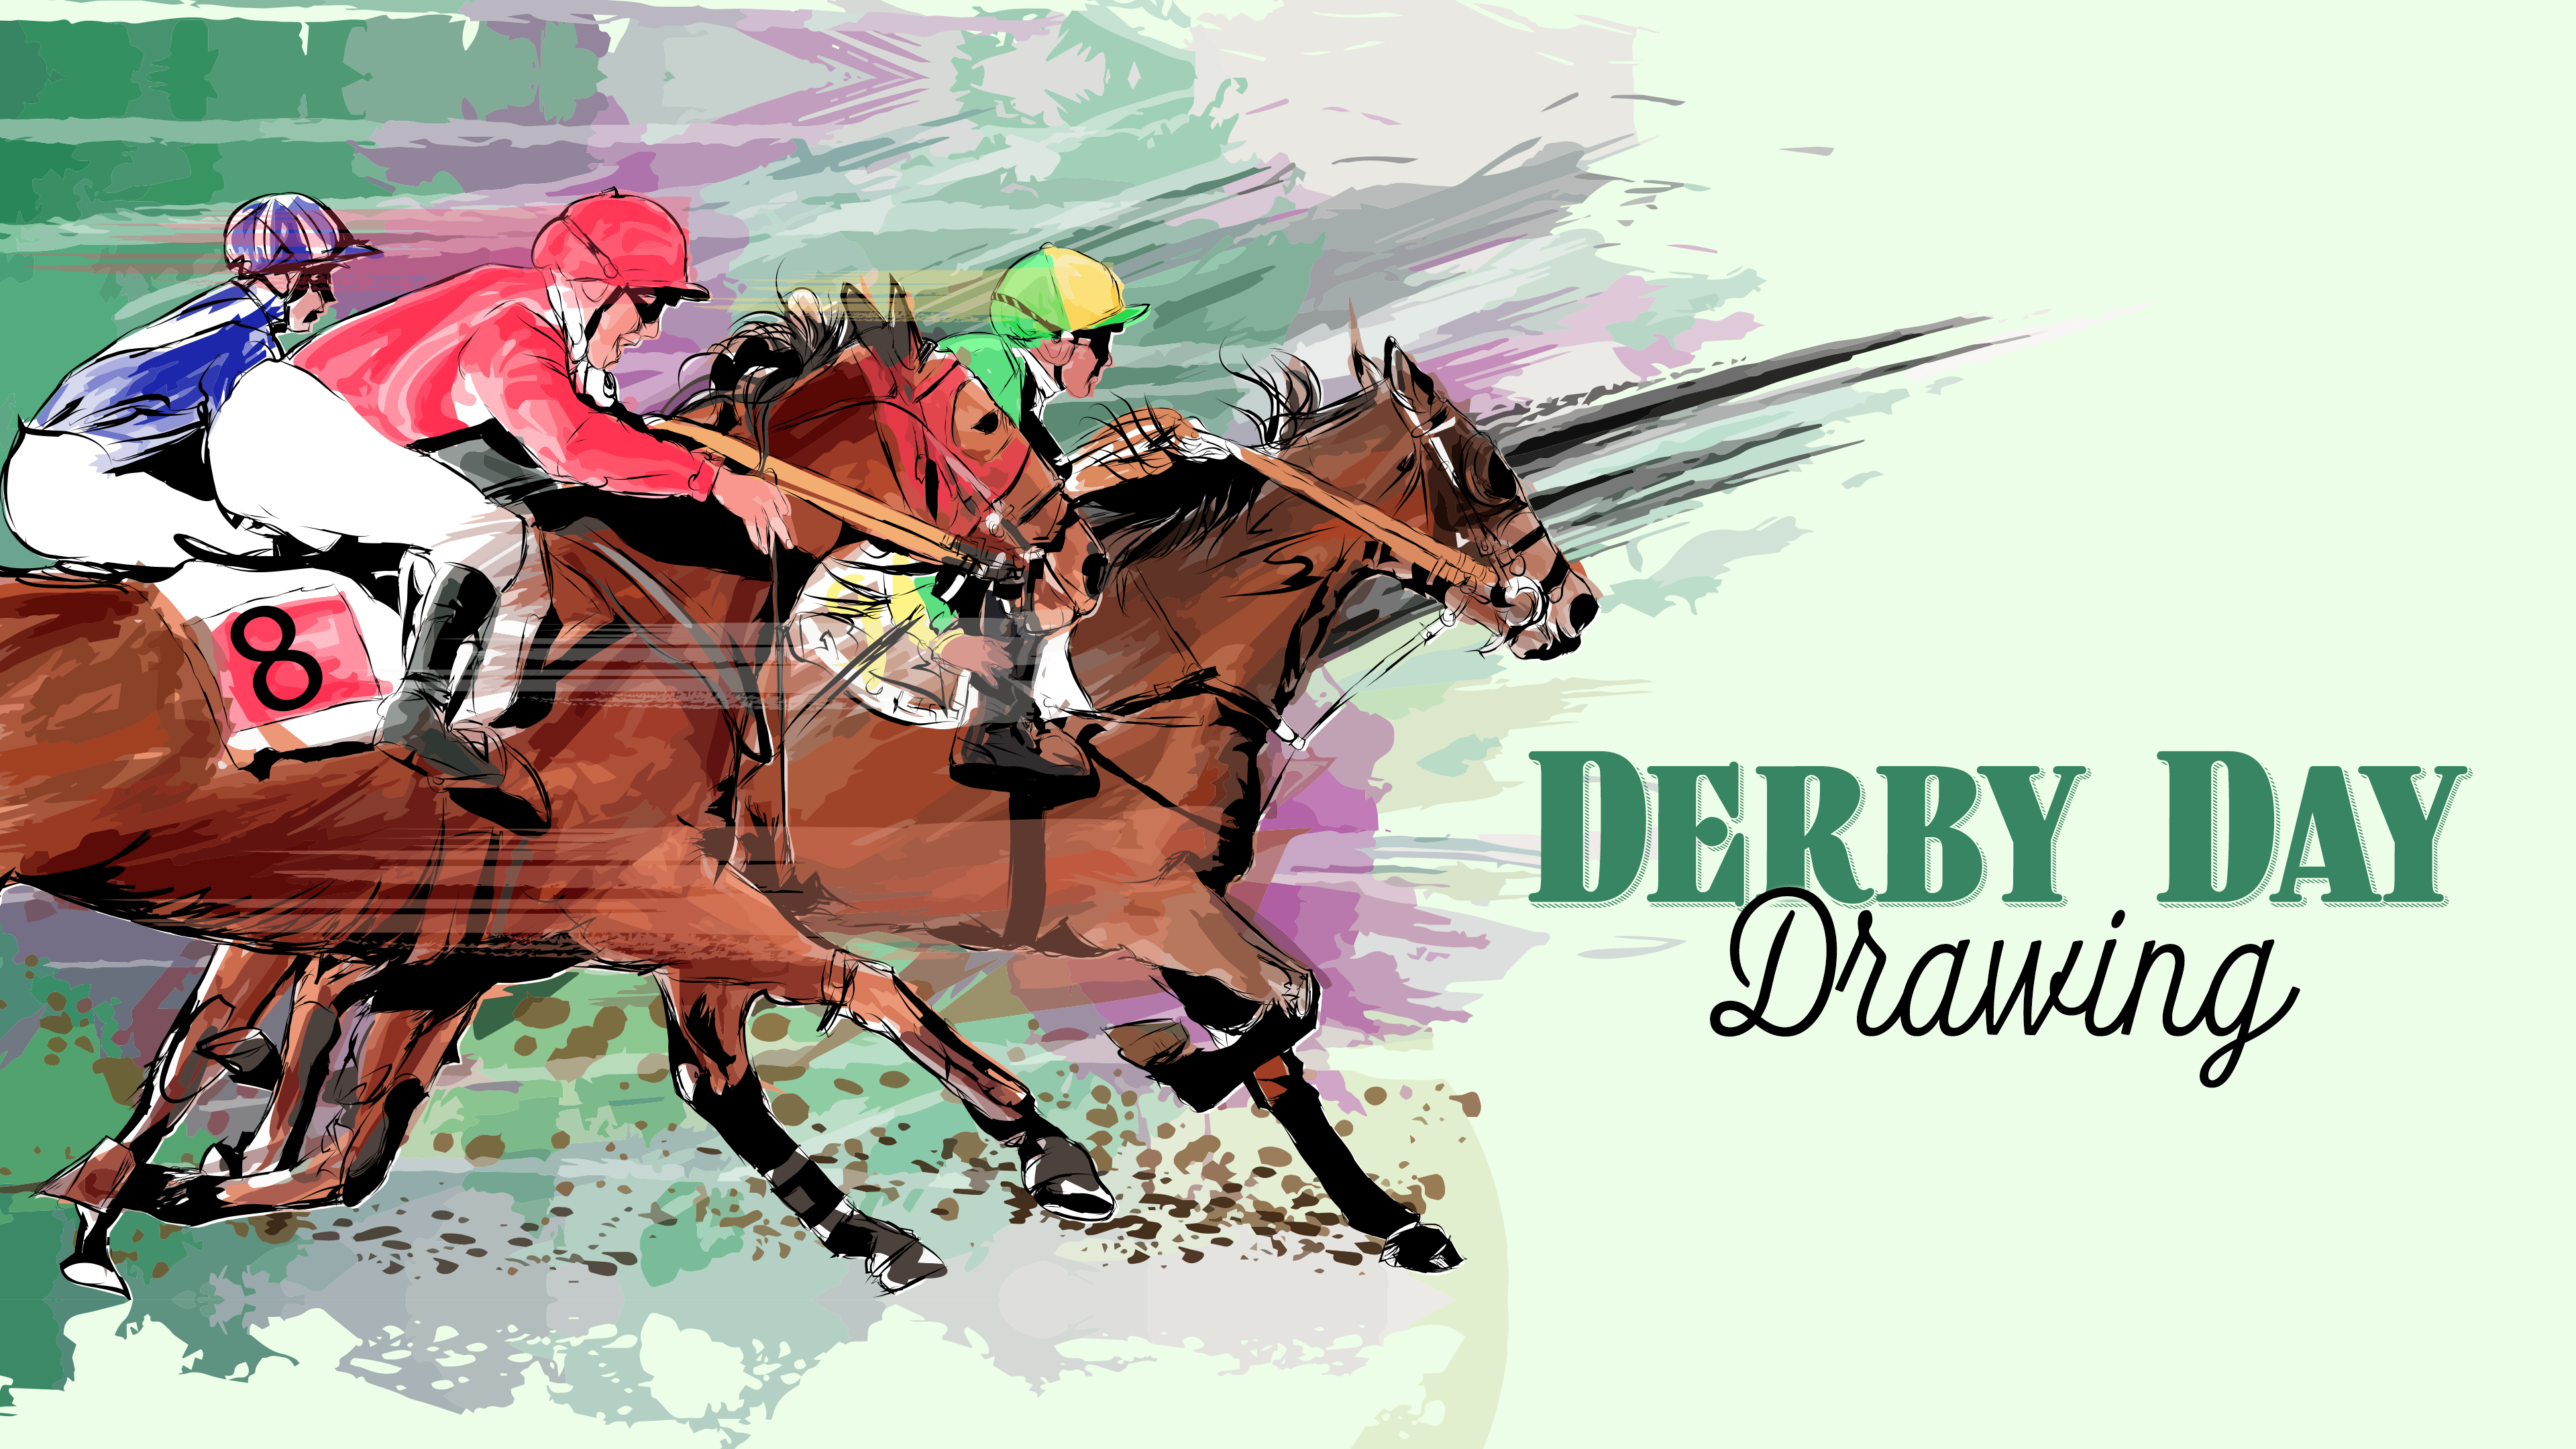 Derby Day Drawings